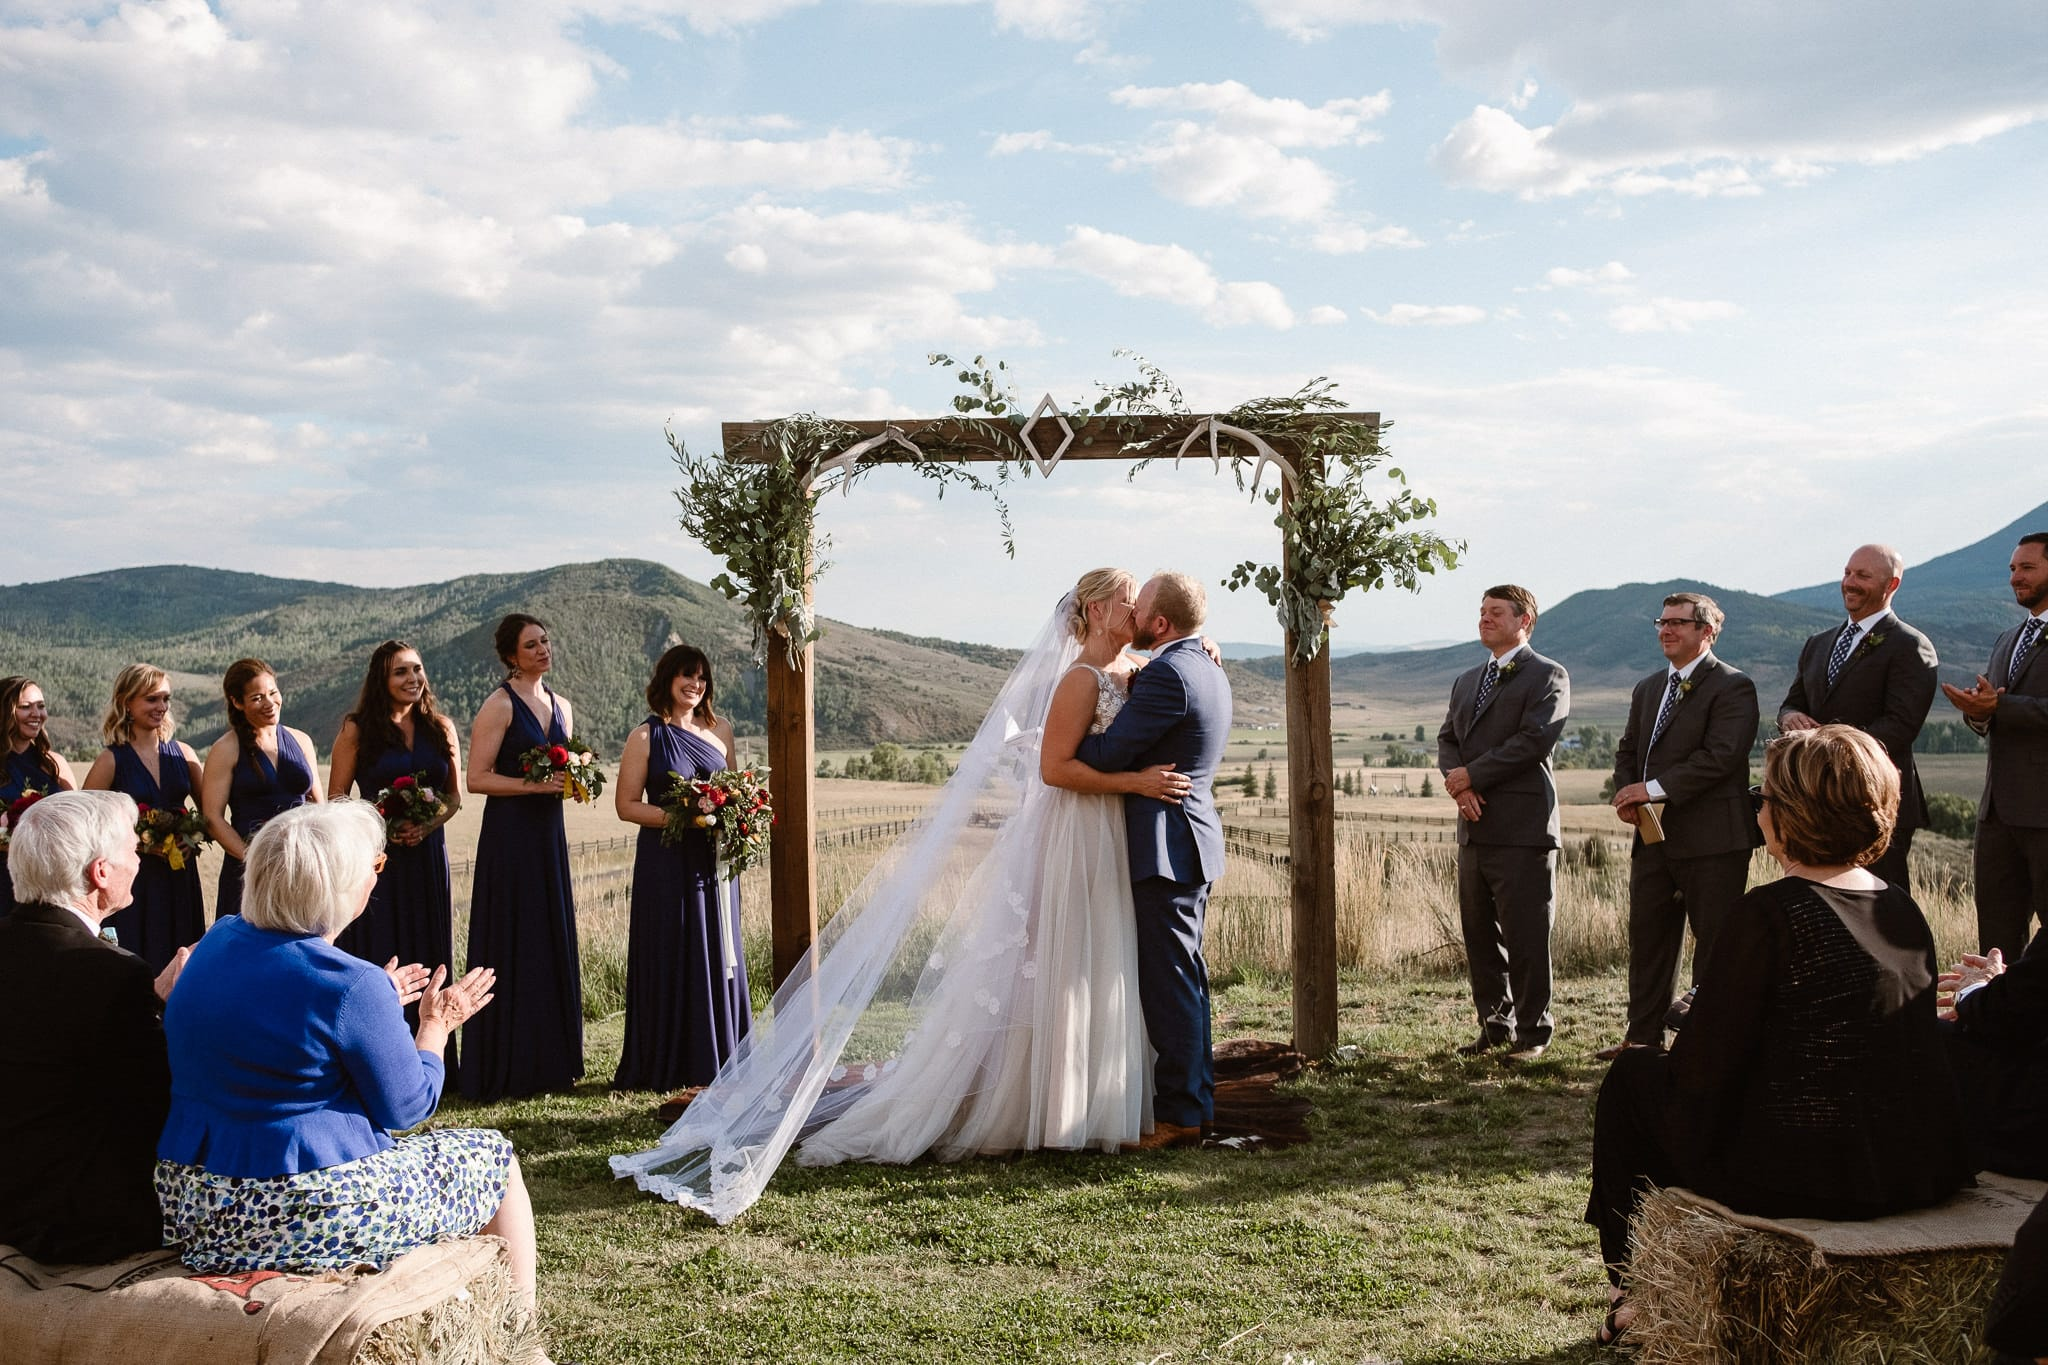 Steamboat Springs wedding photographer, La Joya Dulce wedding, Colorado ranch wedding venues, outdoor wedding ceremony, Colorado wedding, Rocky Mountain wedding, ranch wedding, first kiss